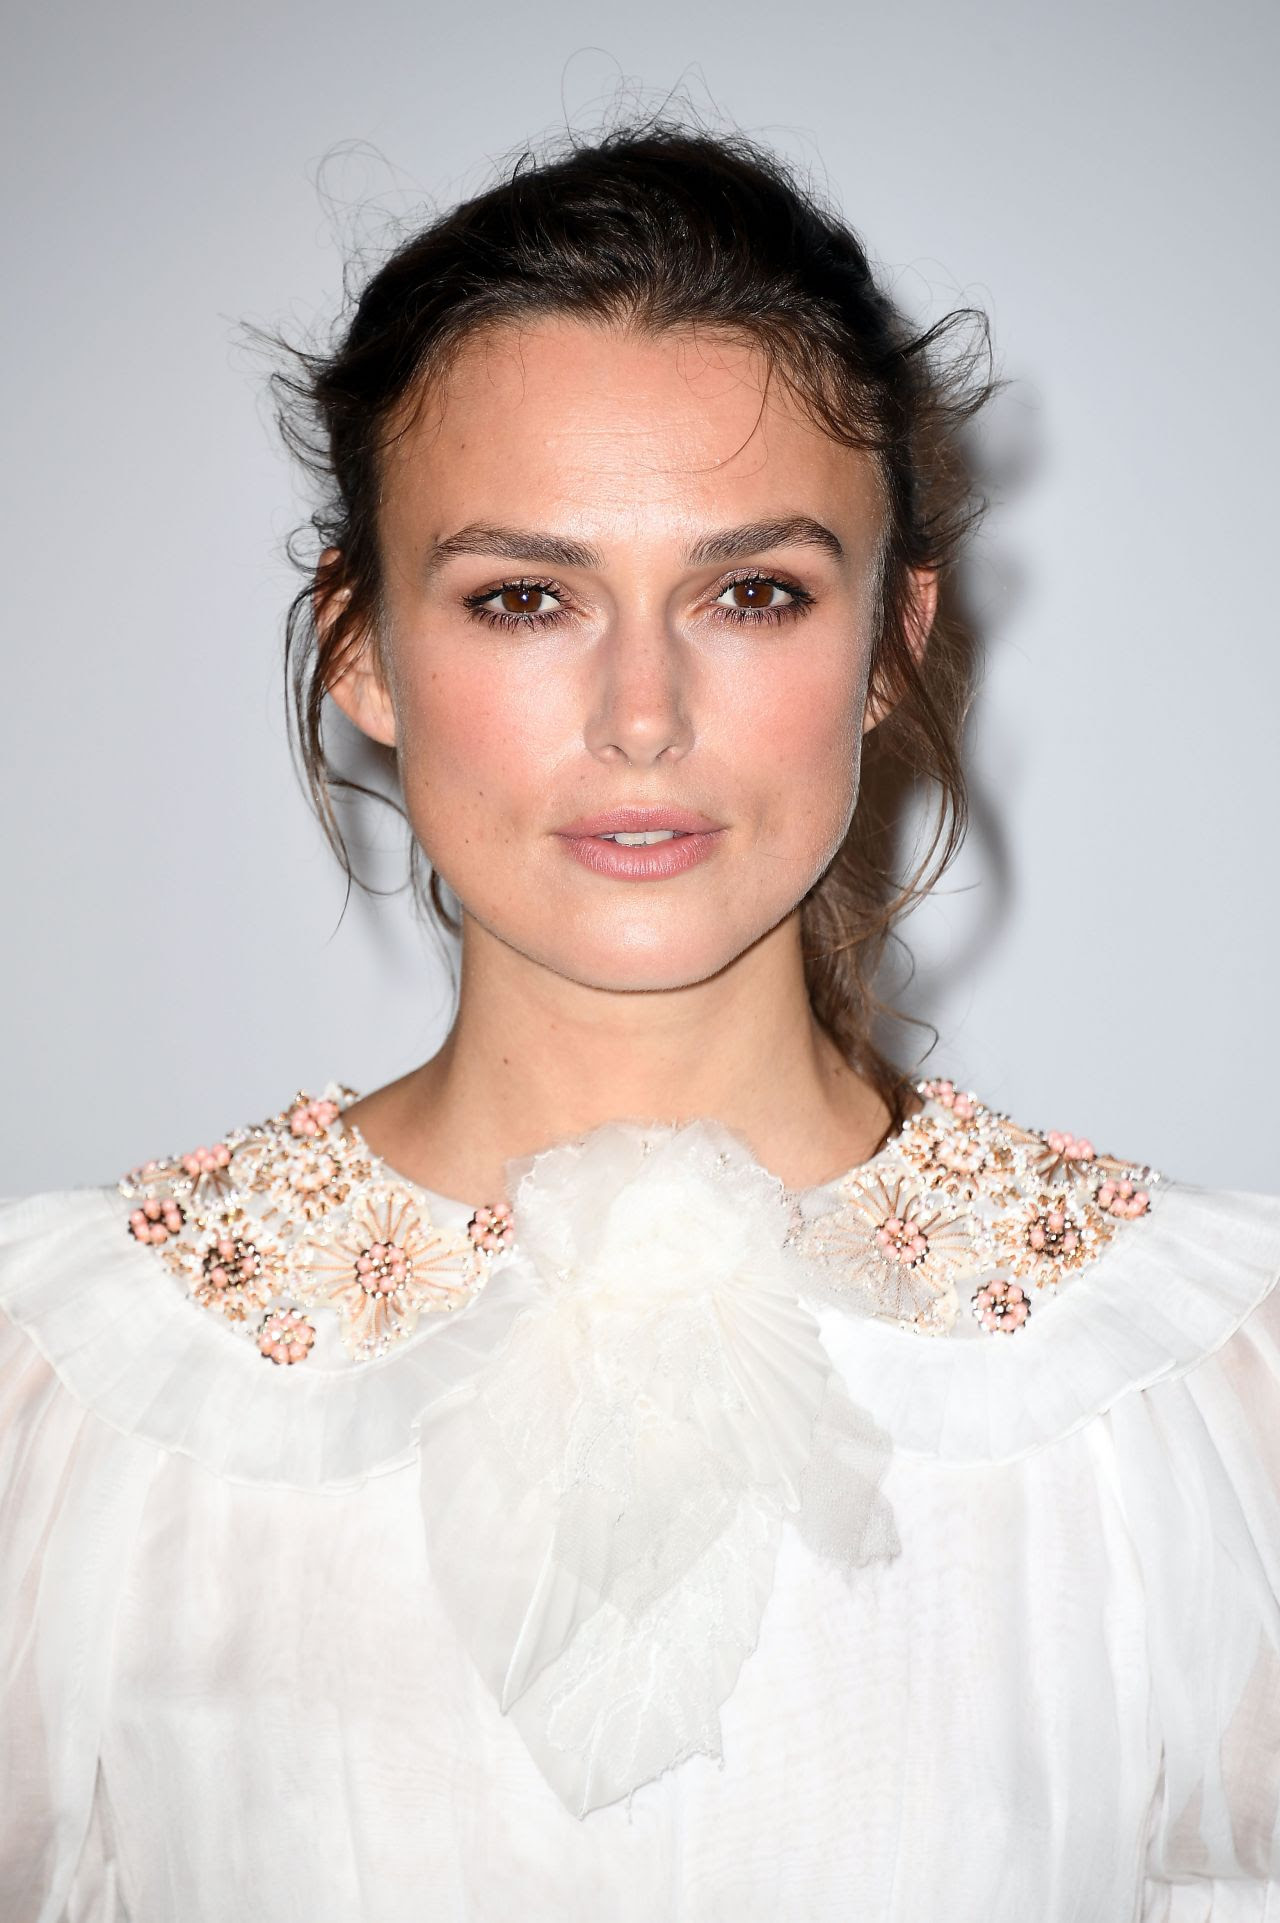 Keira Knightley Latest Photos - CelebMafia